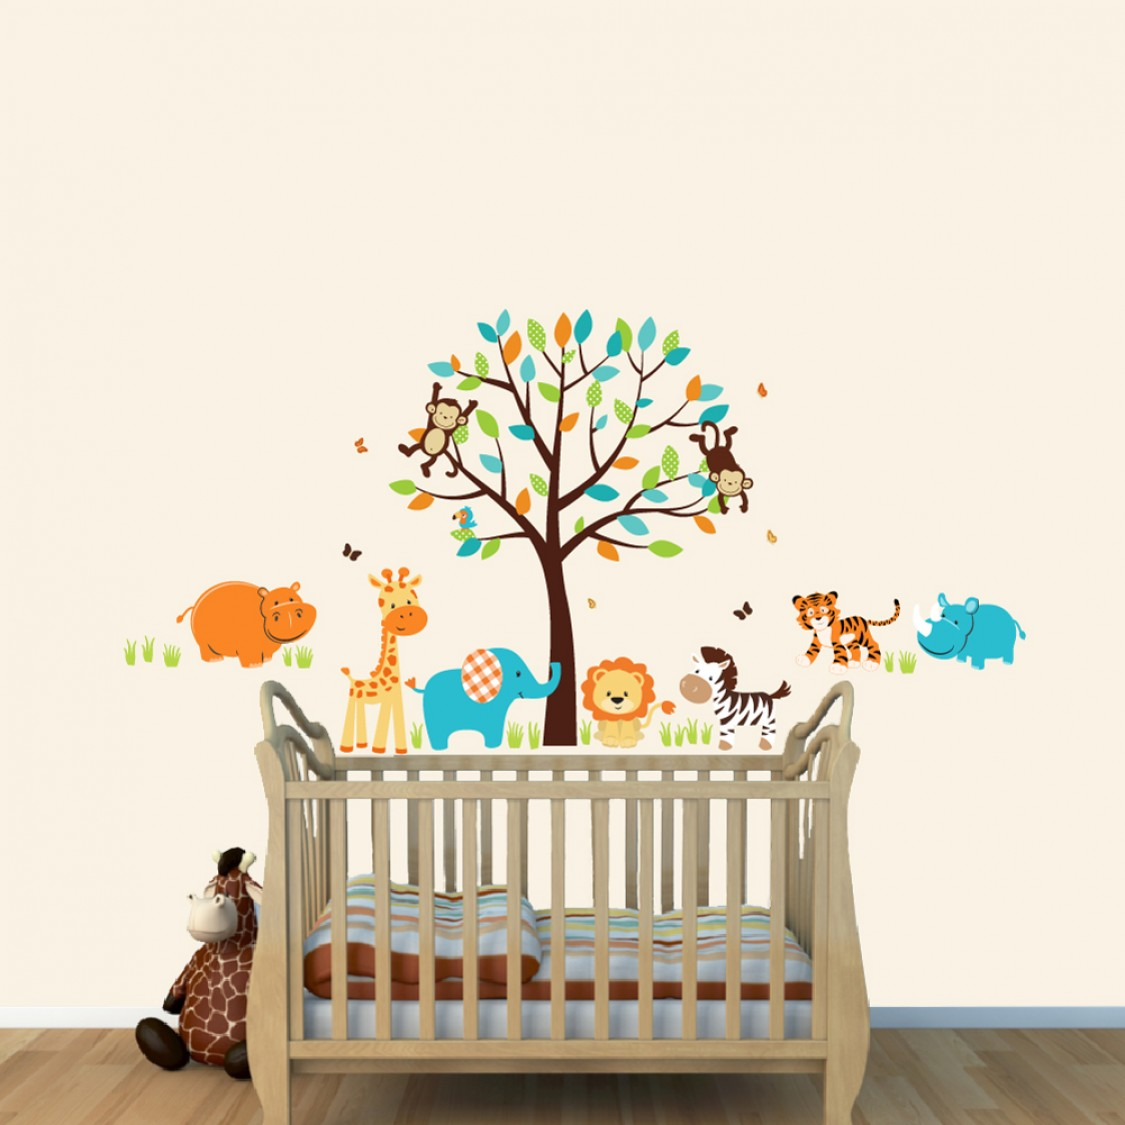 Jungle Wall Stickers For Nursery With Hippo Stickers For Kids Playroom